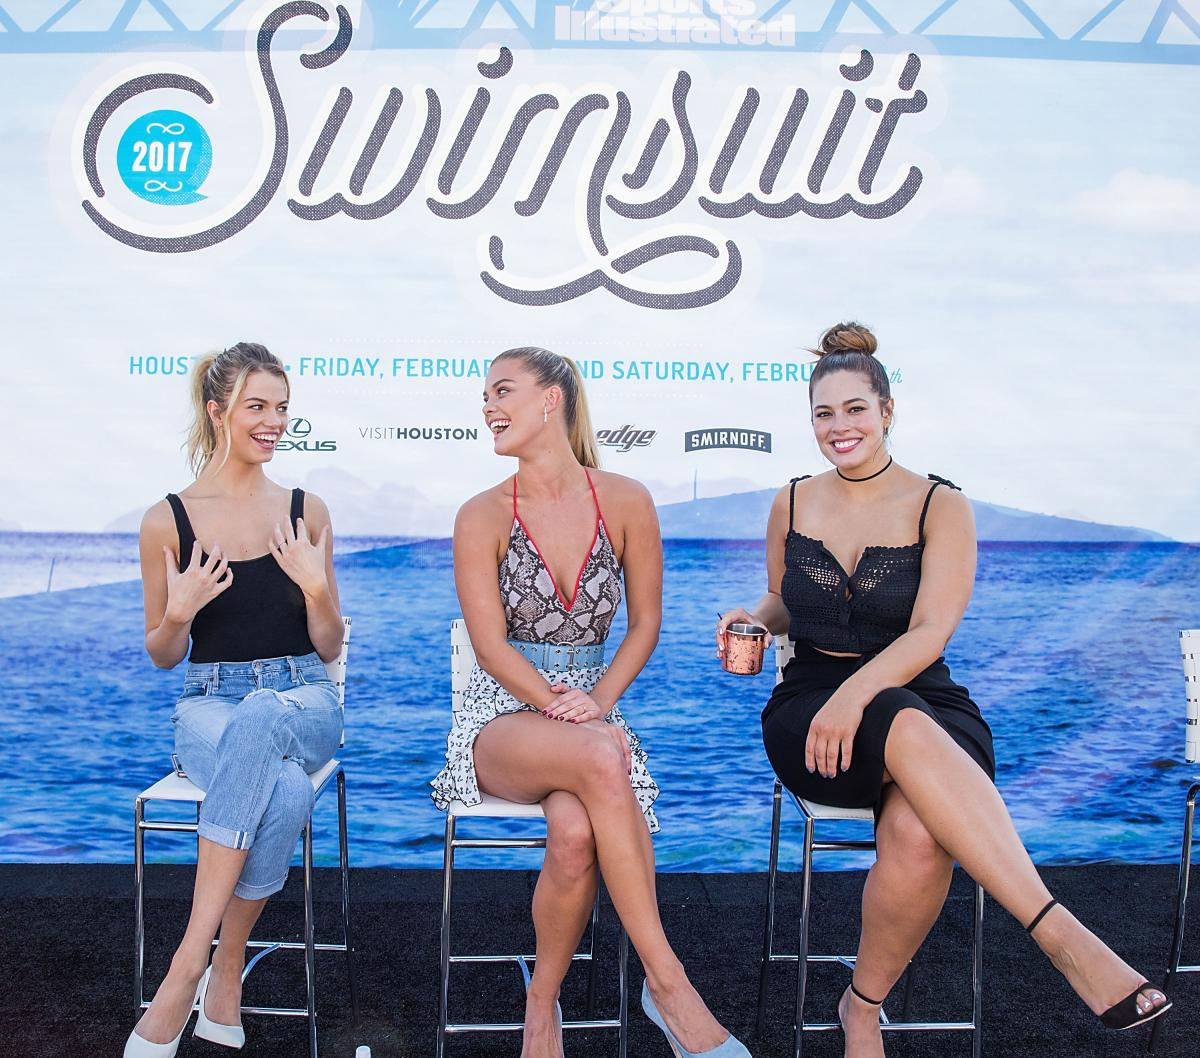 Ashley graham vibes by si swimsuit launch festival in houston new images